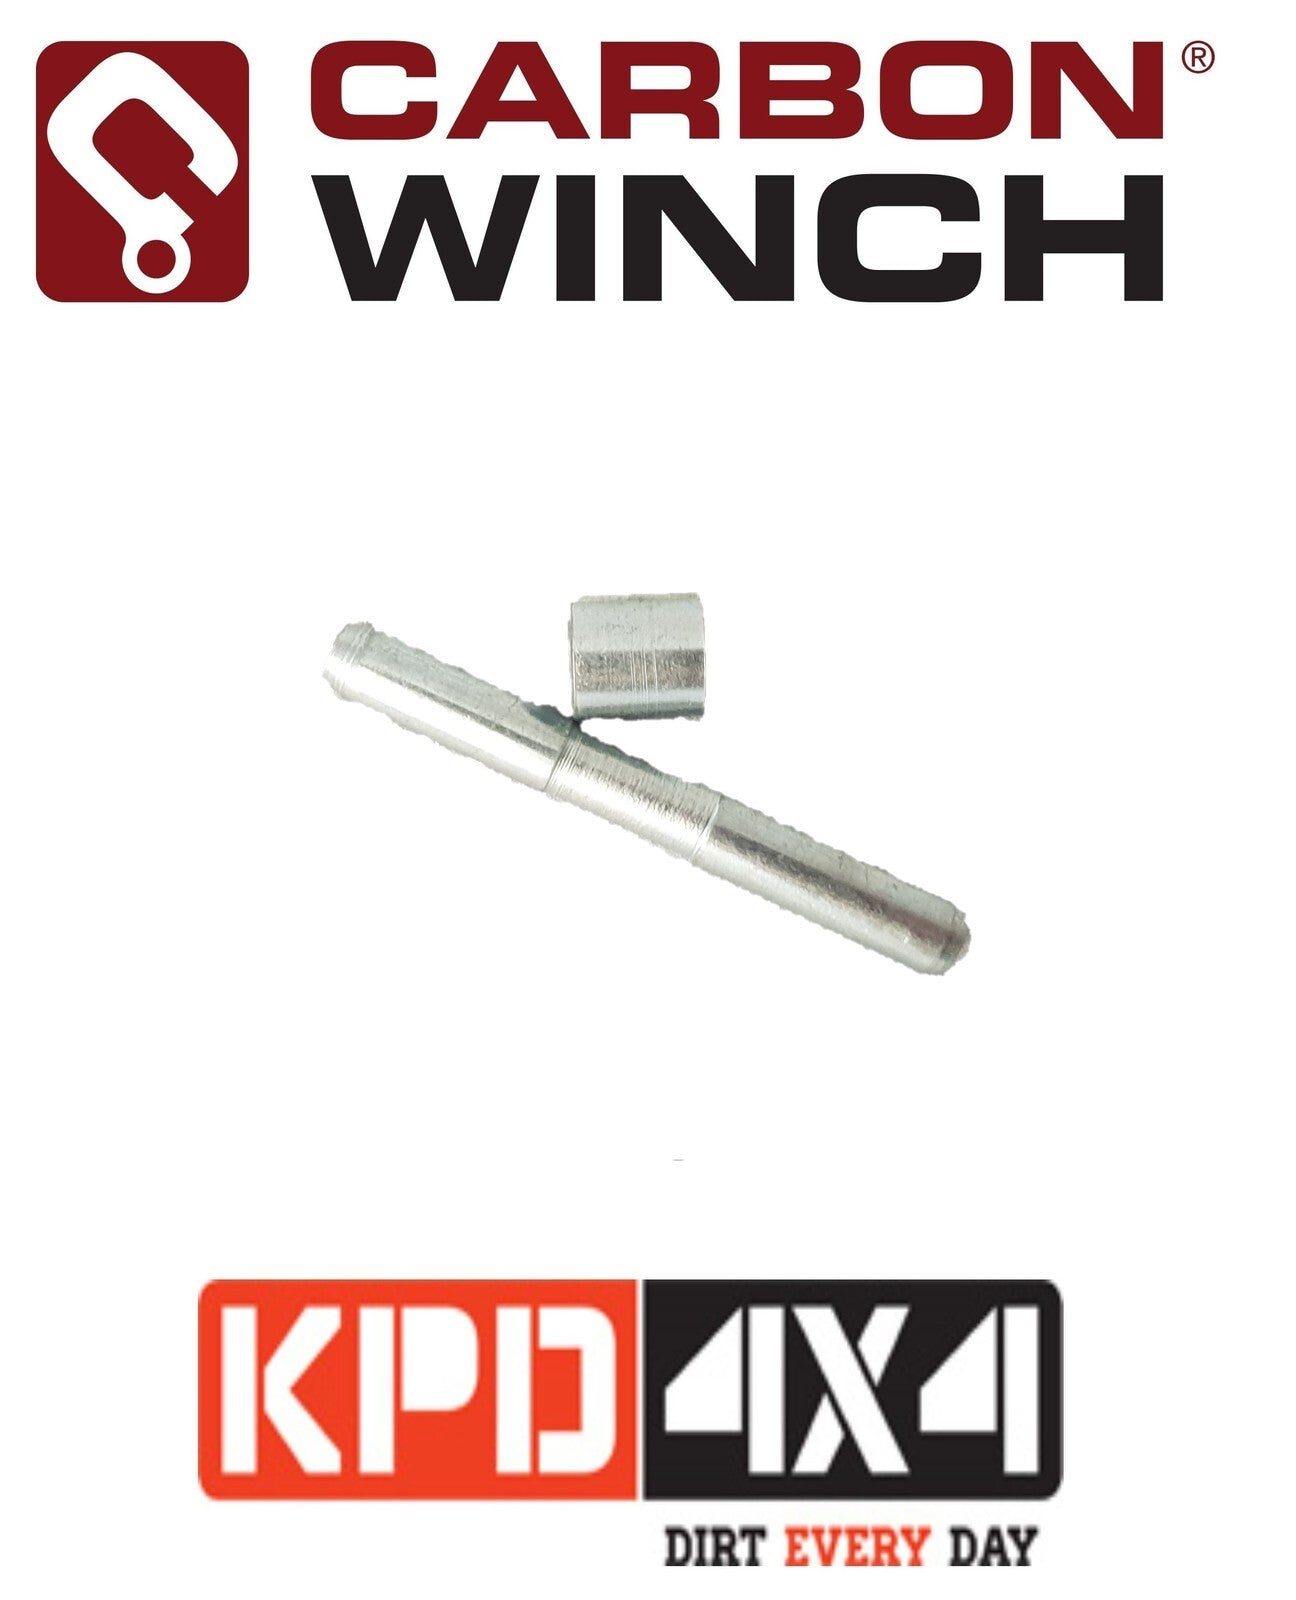 Carbon Winch Hammerlock Pin And Retainer Kit Carbon Winch